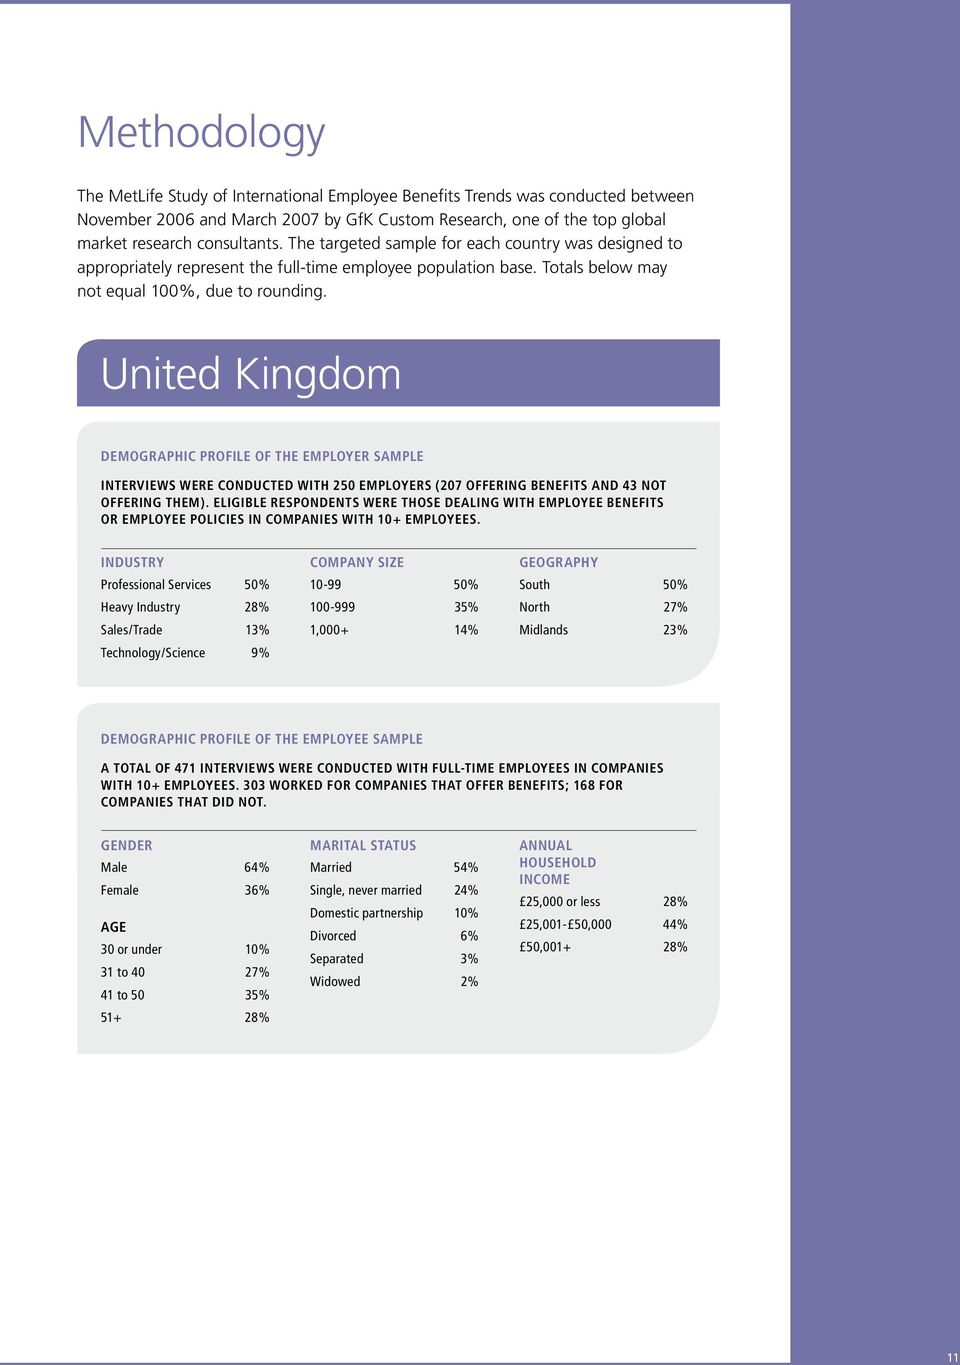 United Kingdom DEMOGRAPHIC PROFILE OF THE EMPLOYER SAMPLE Interviews were conducted with 250 employers (207 offering benefits and 43 not offering them).